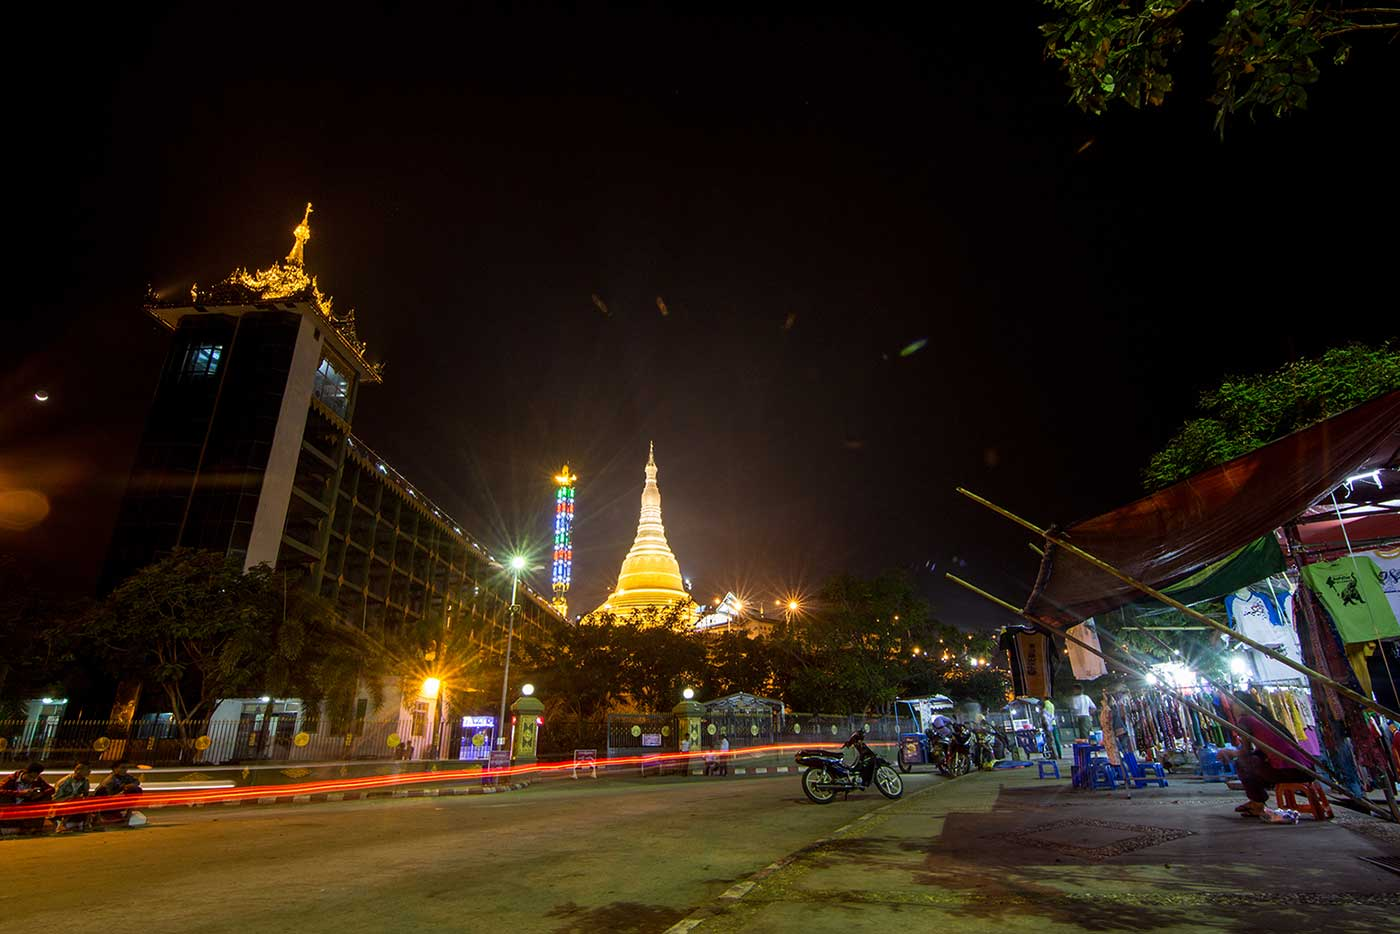 Naypyidaw by Night: markets and motorbikes in a street near the Uppatasanti Pagoda.